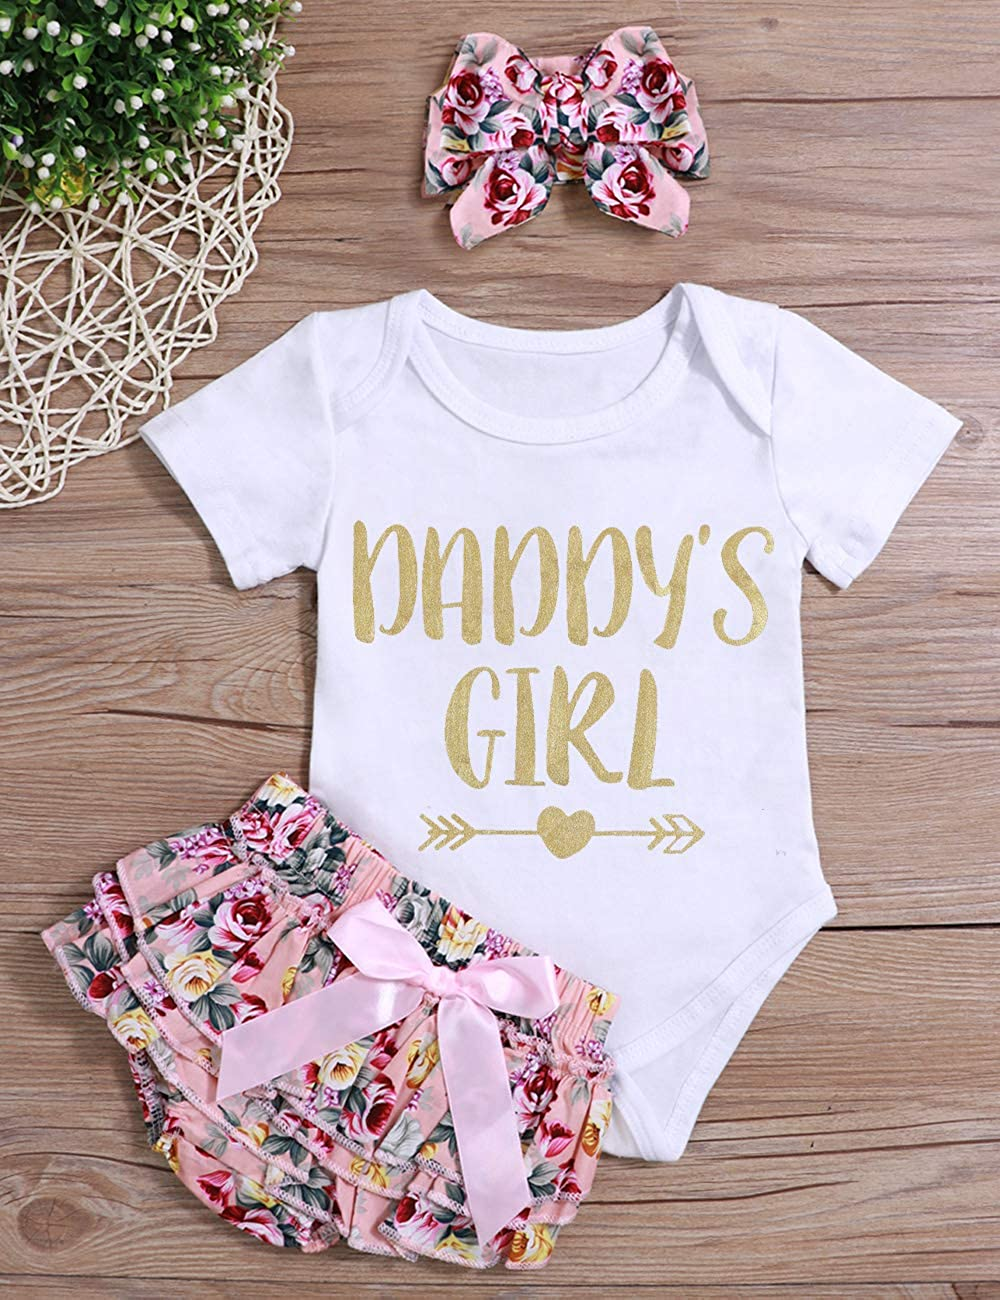 oklady Infant Baby Girl Clothes Daddys Girl Letter Print Romper Floral Bloomers with Headband 3PCs Toddler Outfits Set